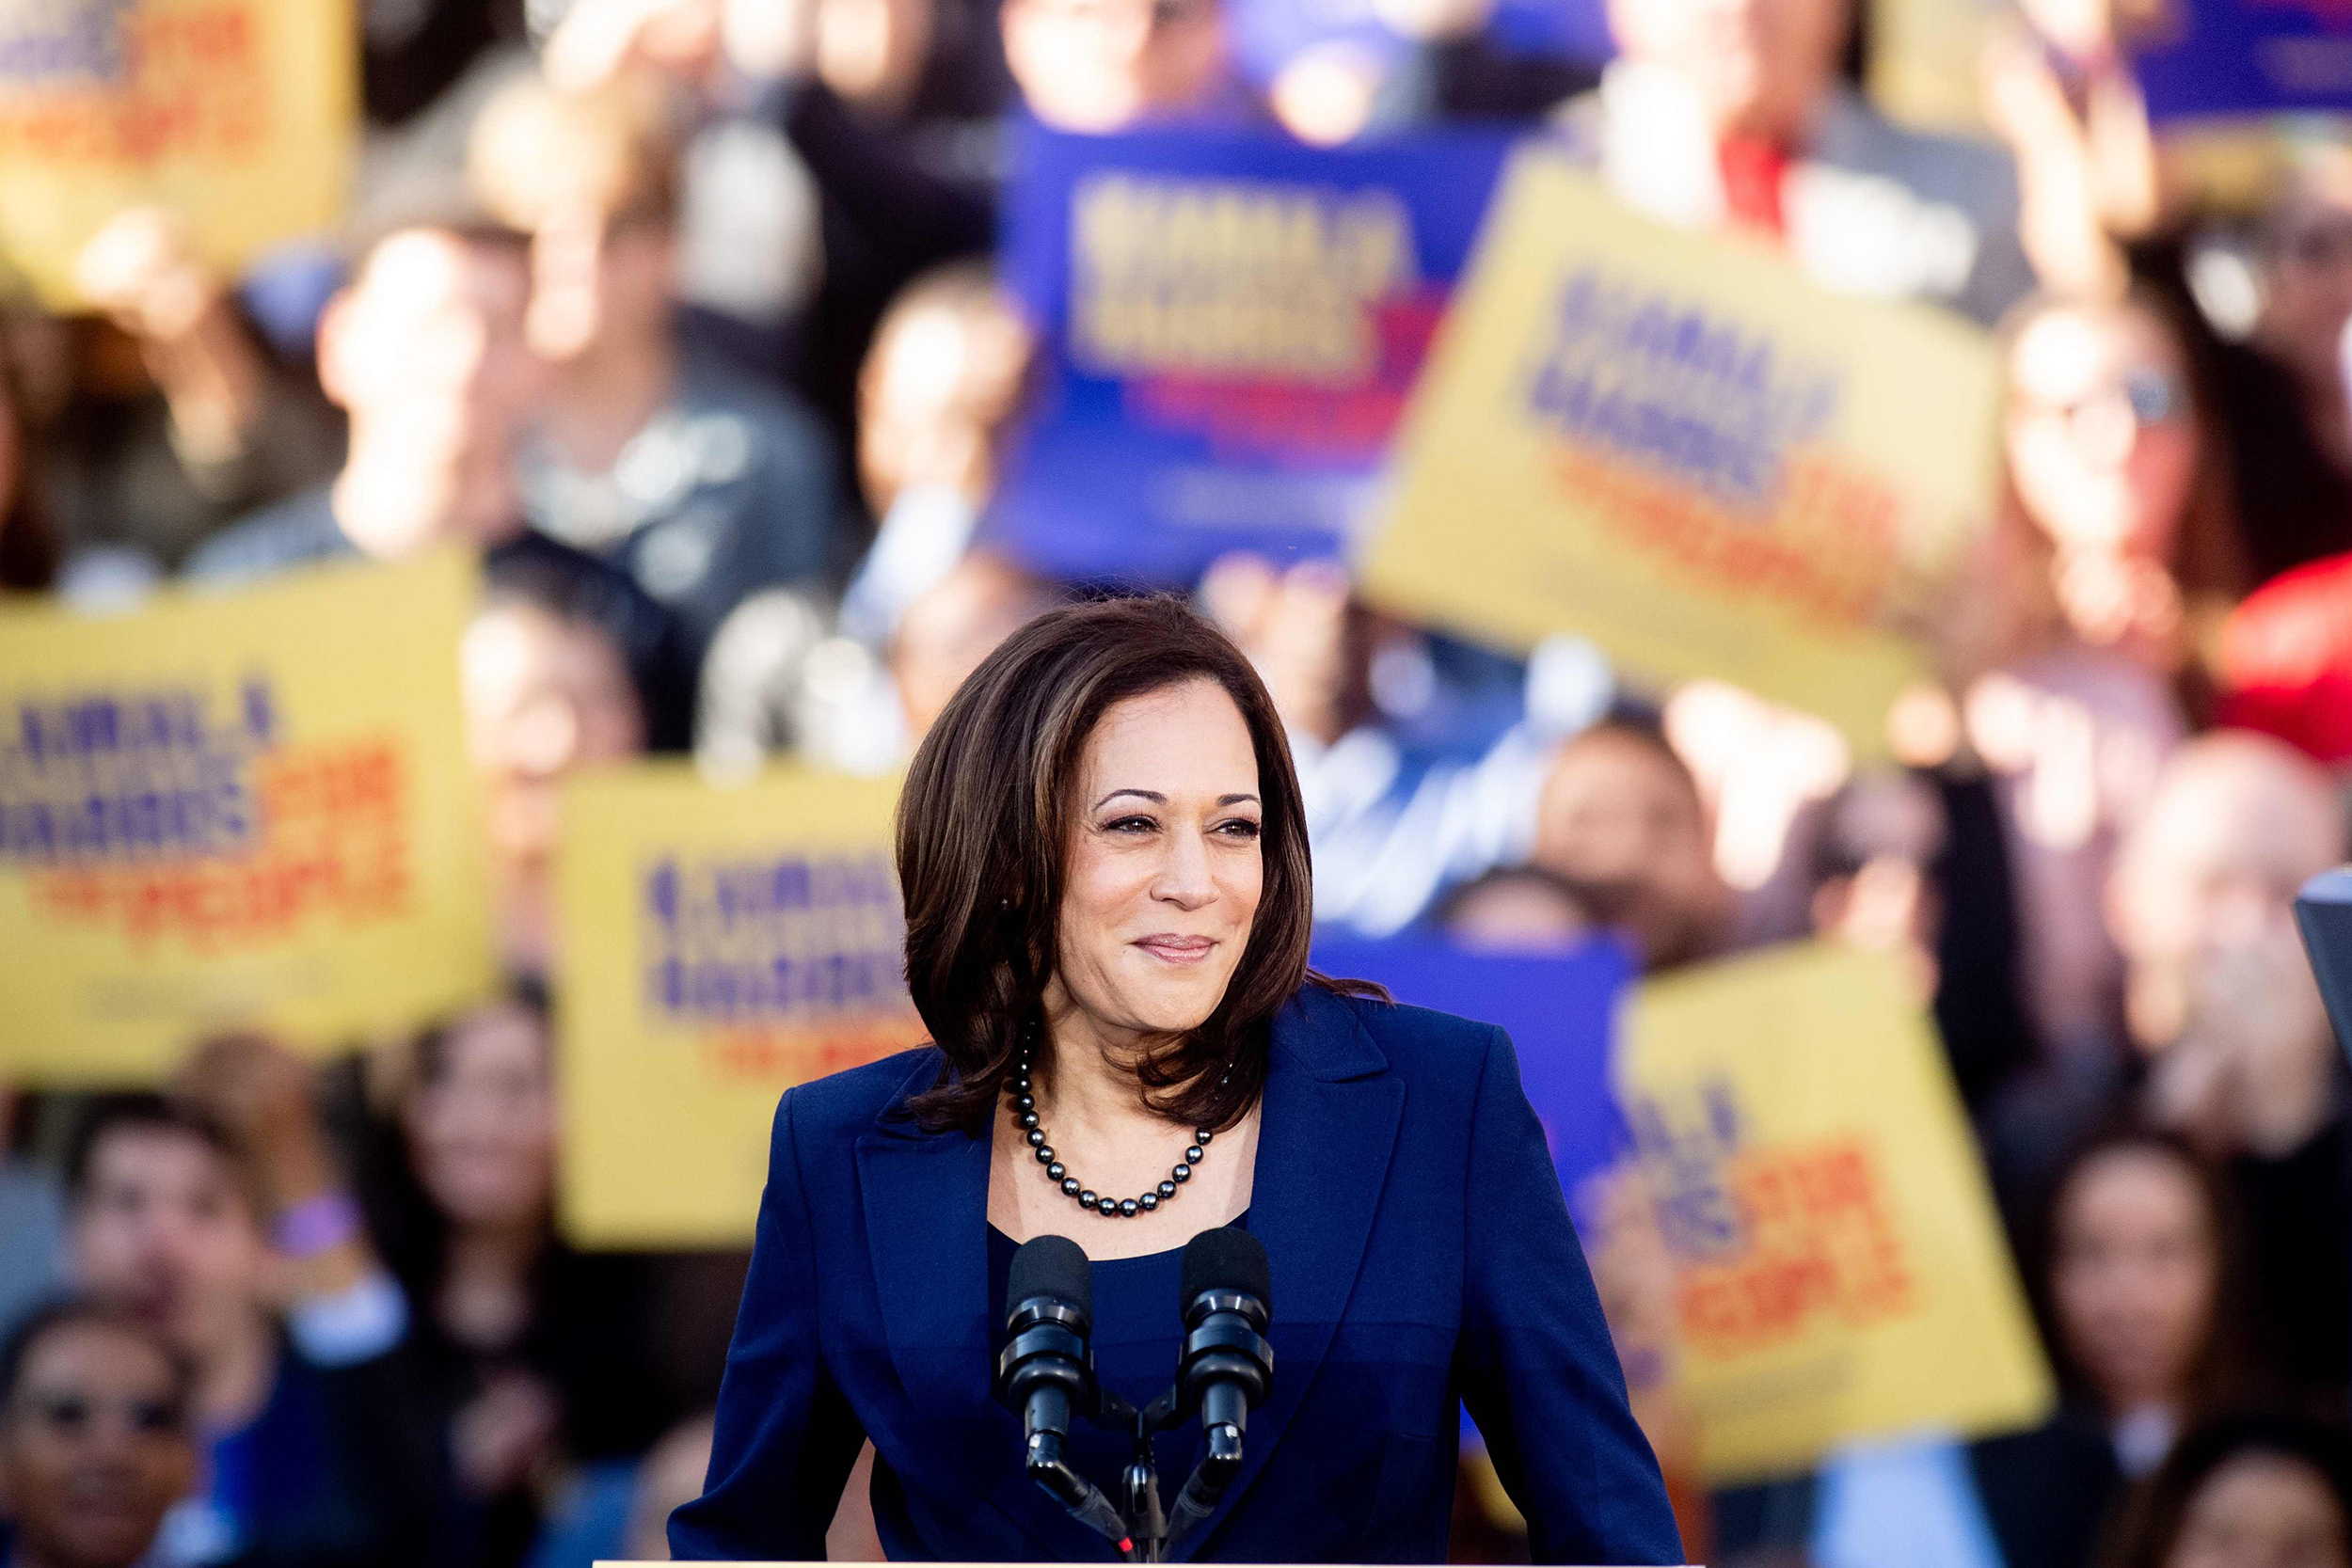 In Kamala Harris Presidential Campaign Indian Americans Want More Opportunities To Connect